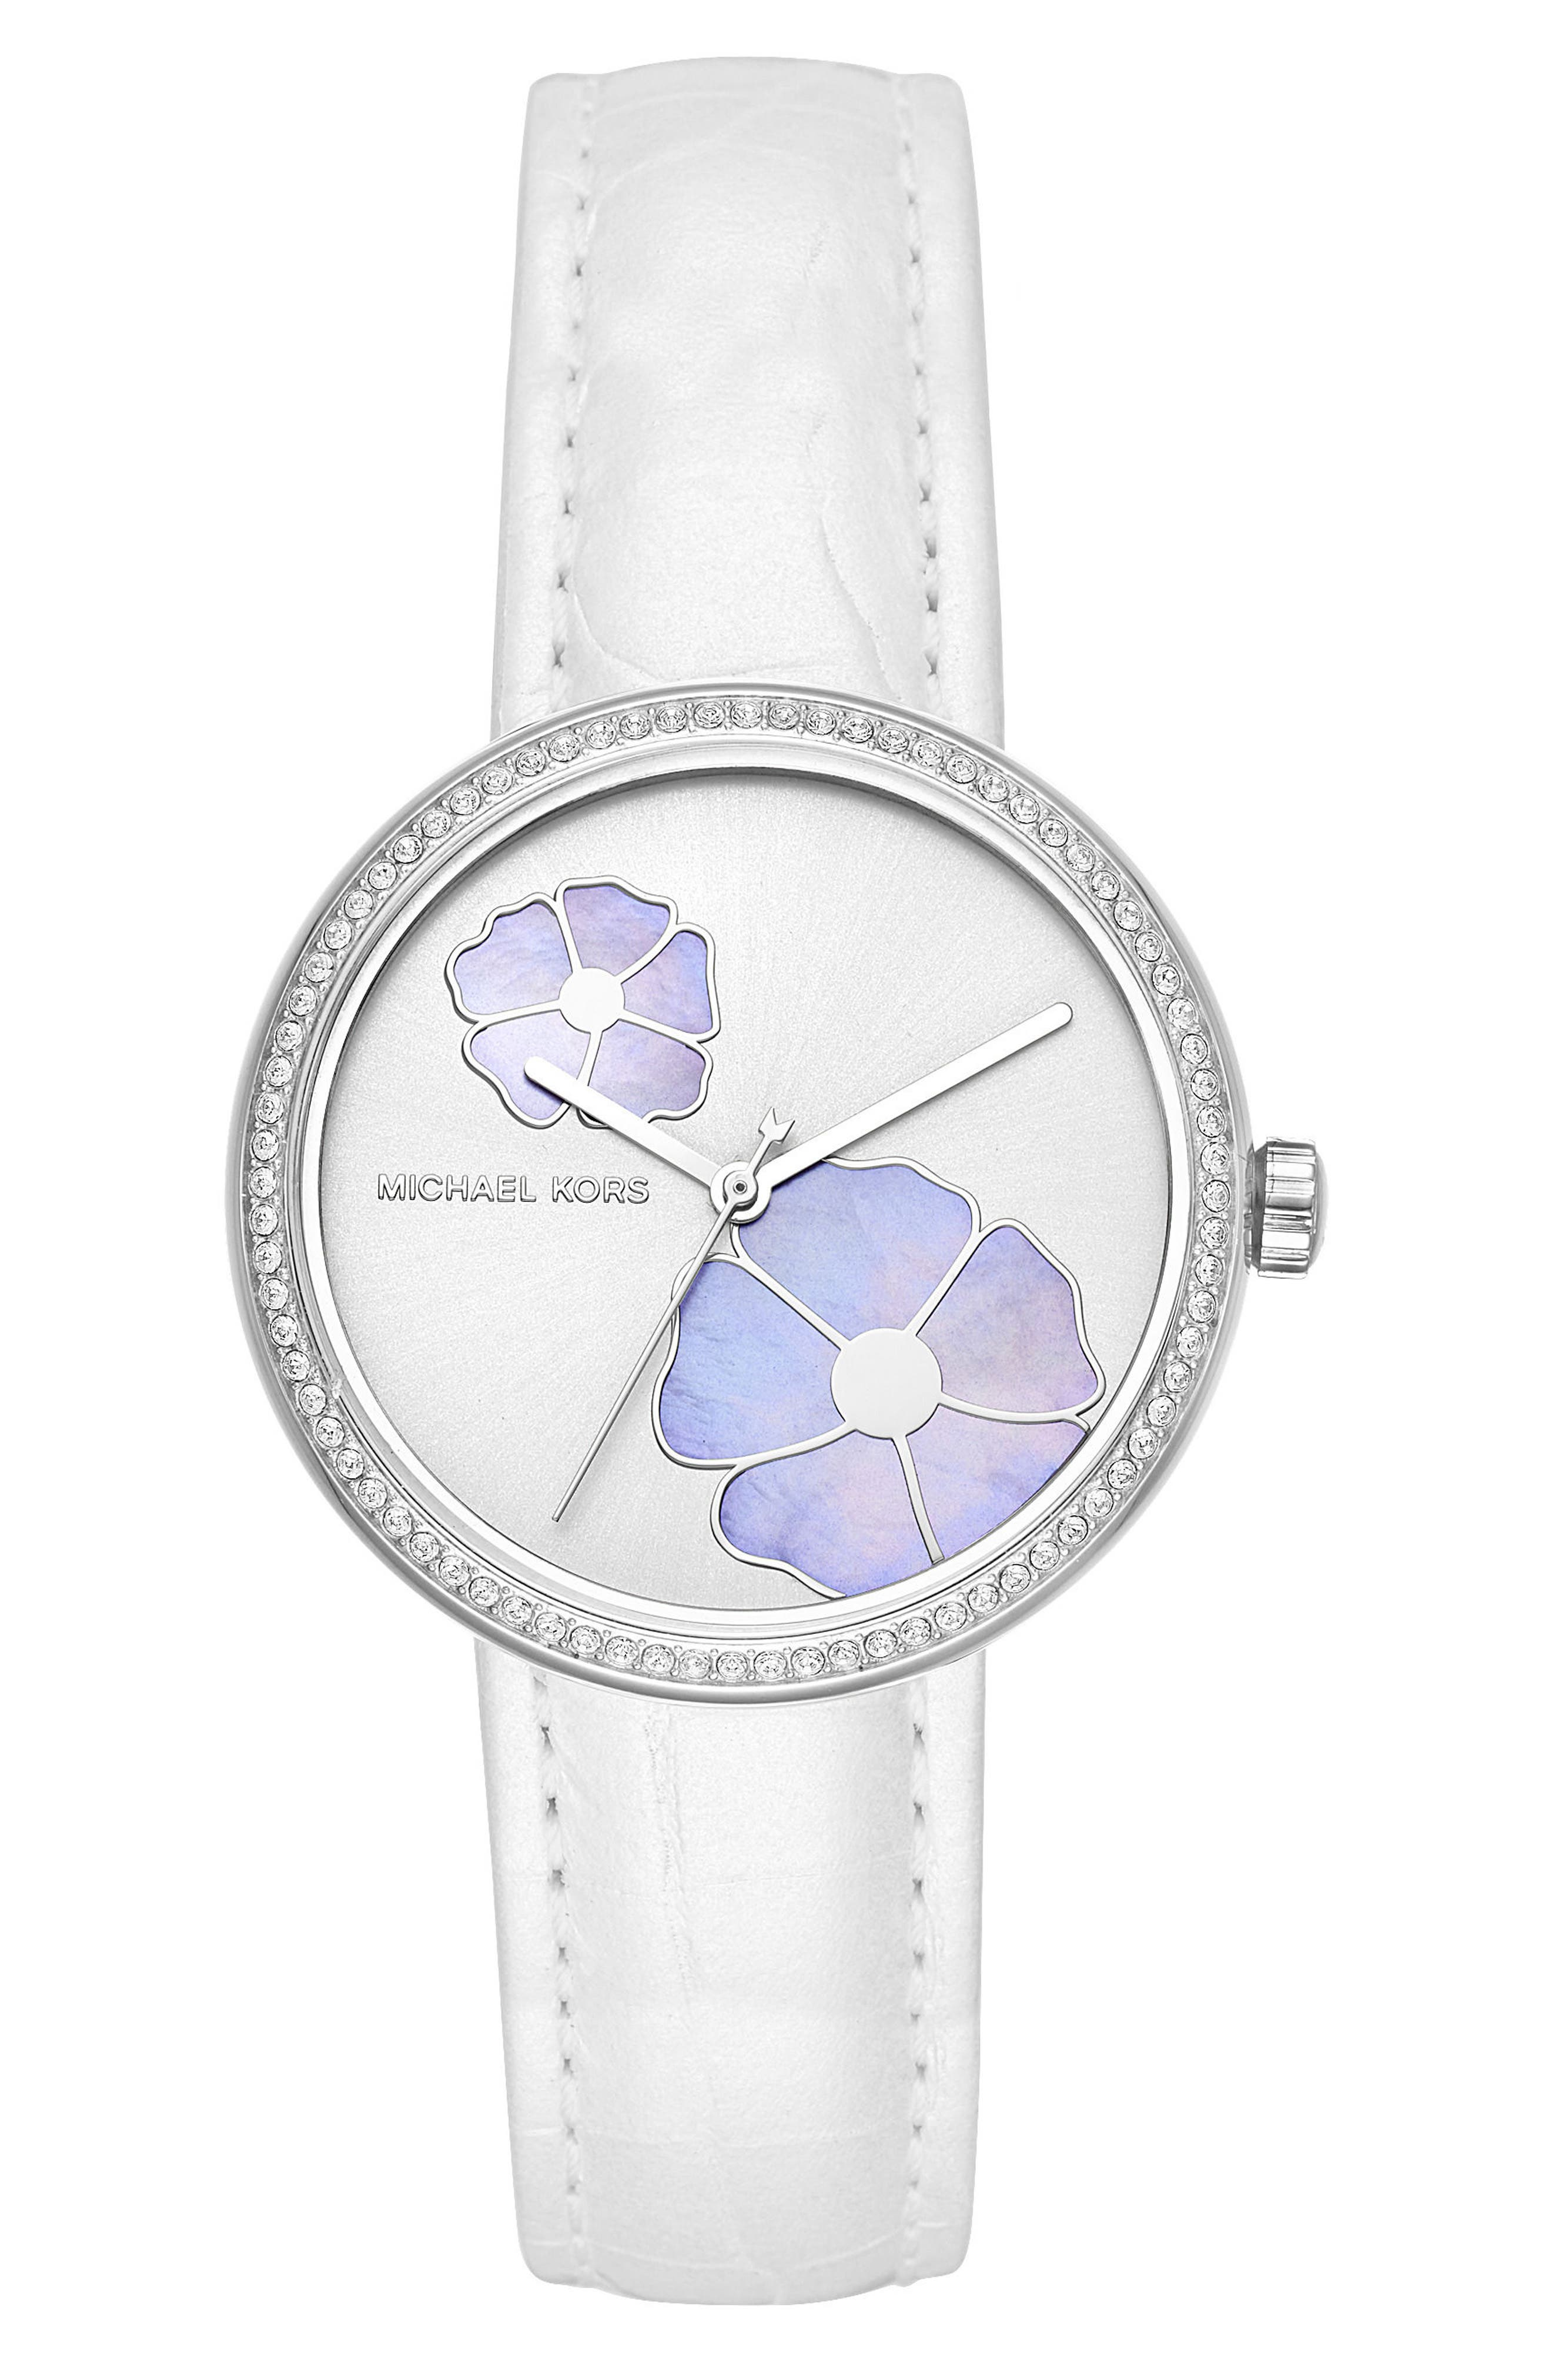 Michael Kors Courtney Crystal Leather Strap Watch, 36mm